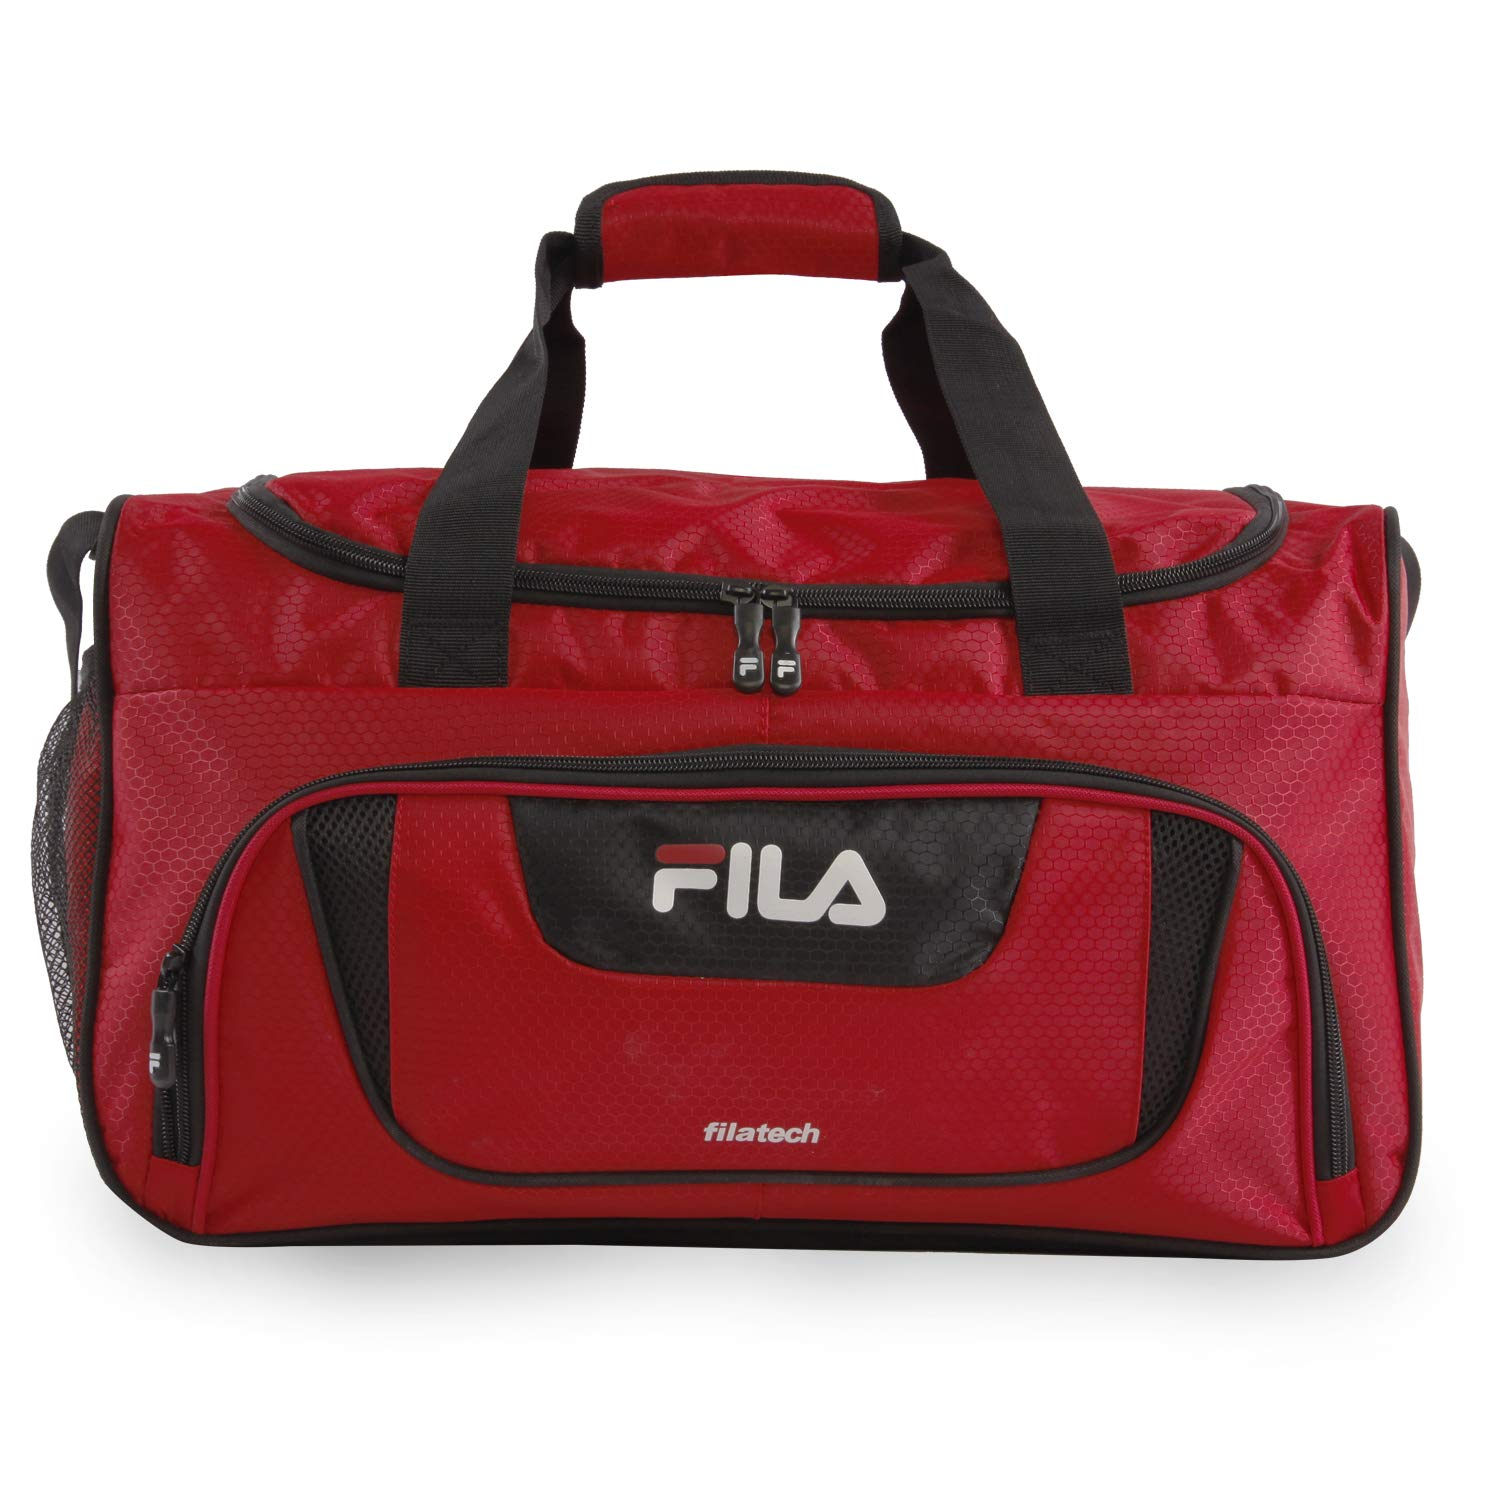 Fila Ace 2 Small Duffel Gym Sports Bag, Red, One Size